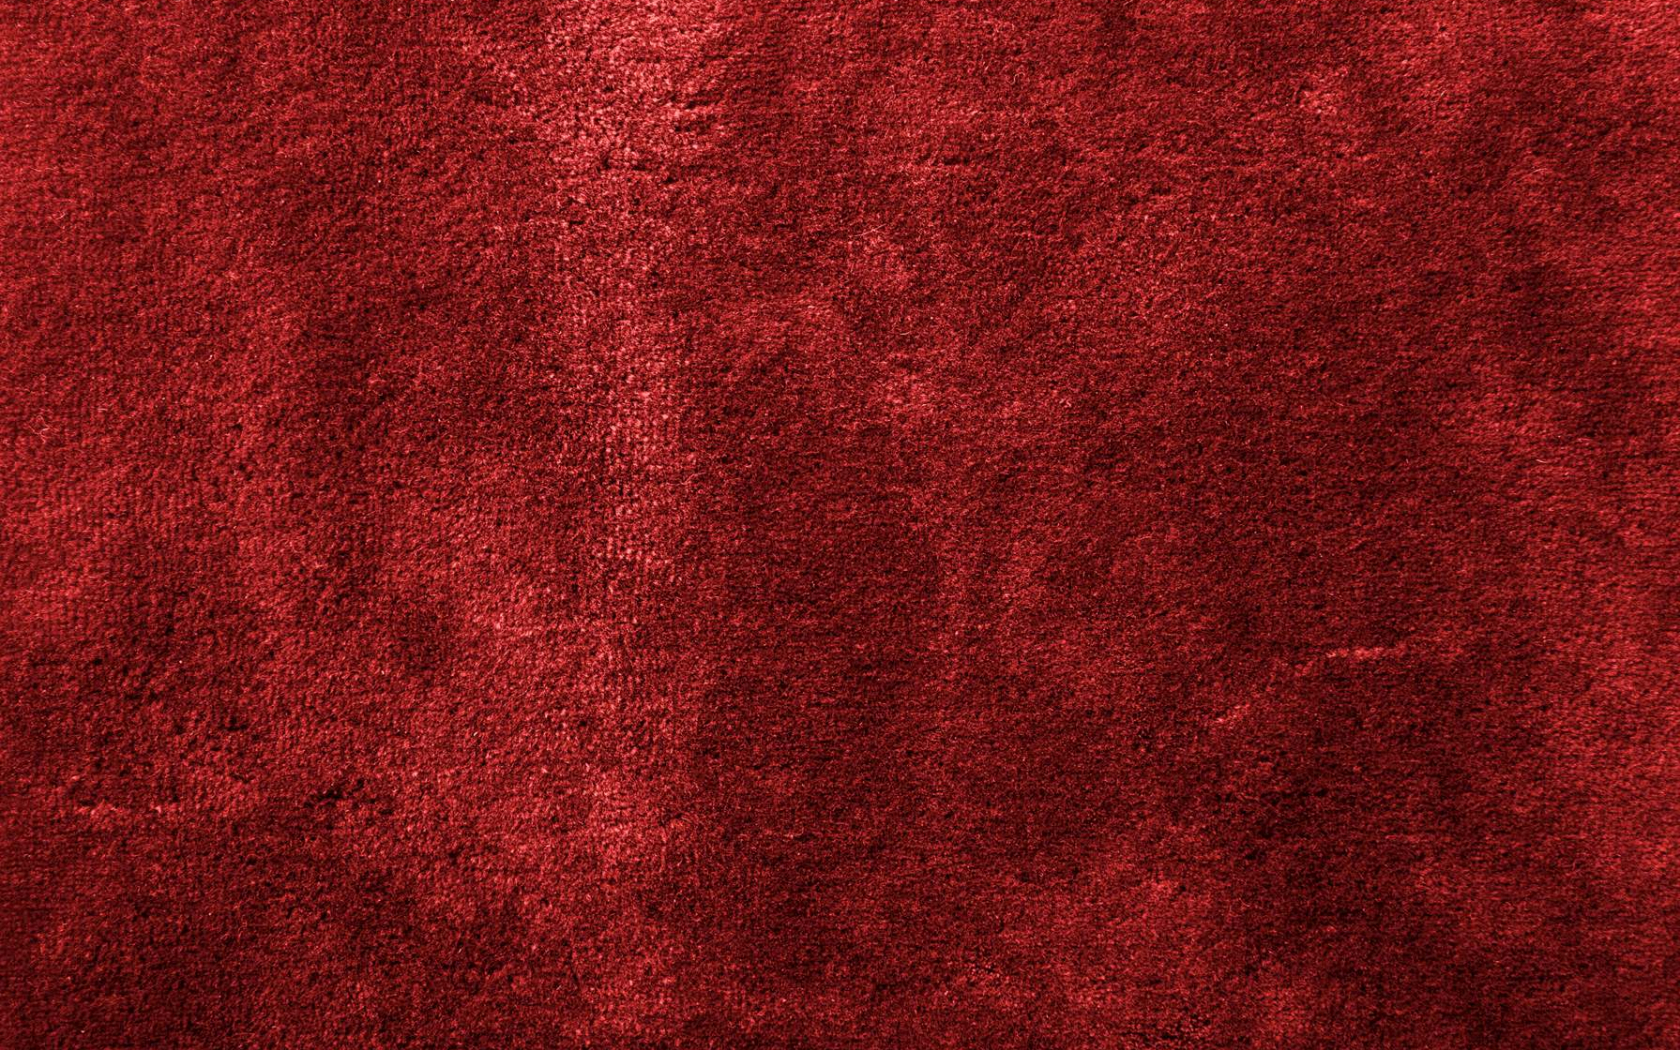 Free download Red Velvet Texture Background PhotoHDX ...